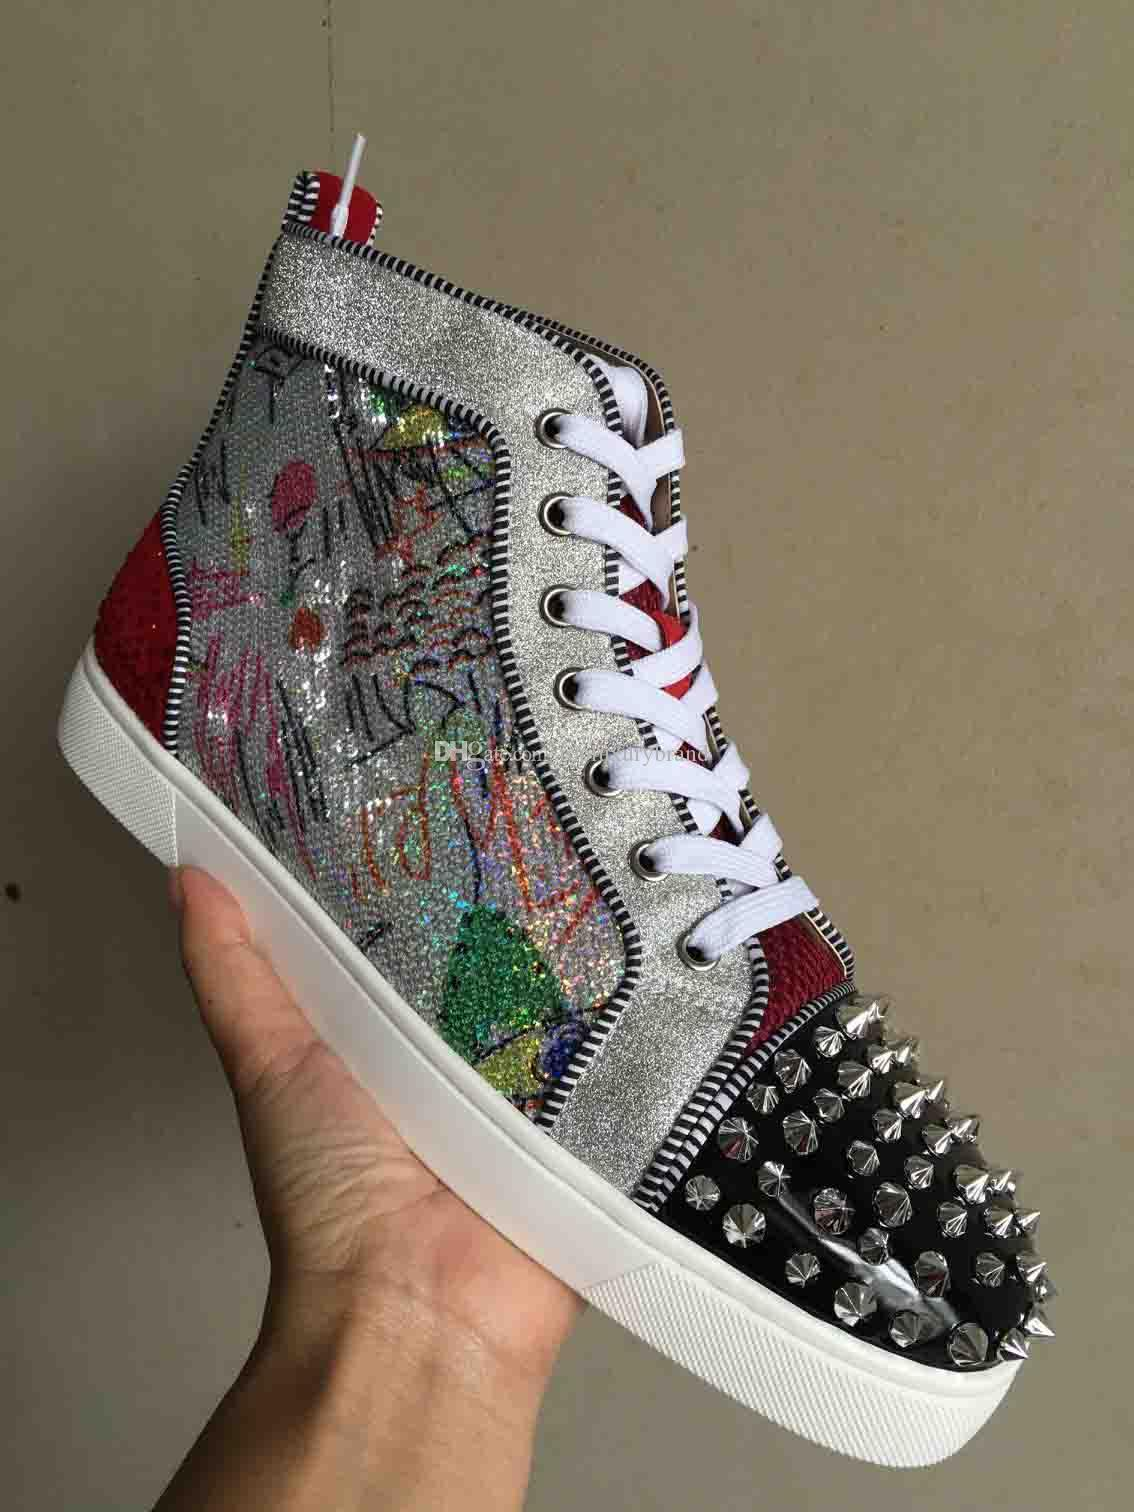 High Top Red Bottom Spikes Sneakers Men Casual Shoes